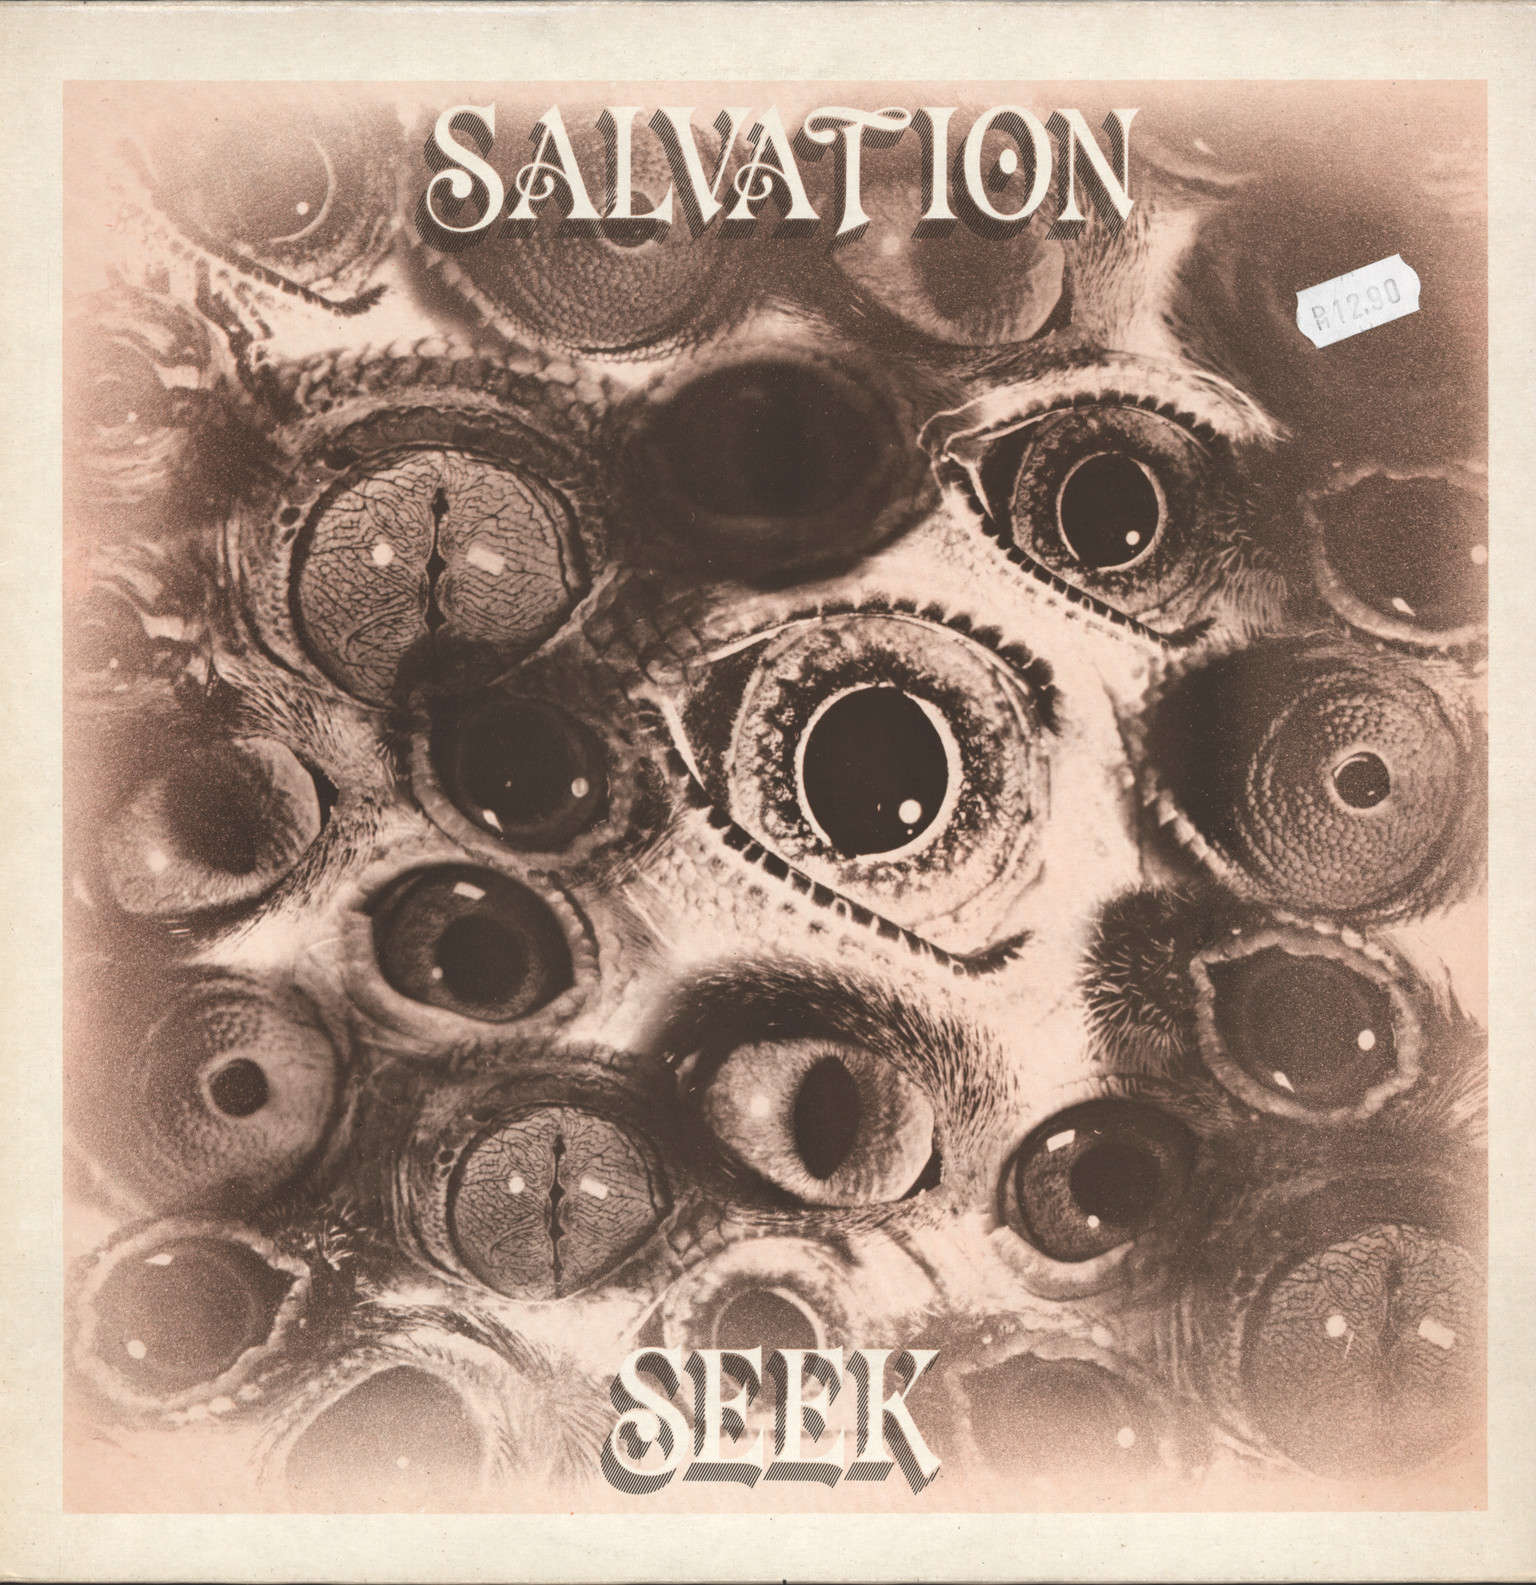 "Salvation: Seek, 12"" Maxi Single (Vinyl)"